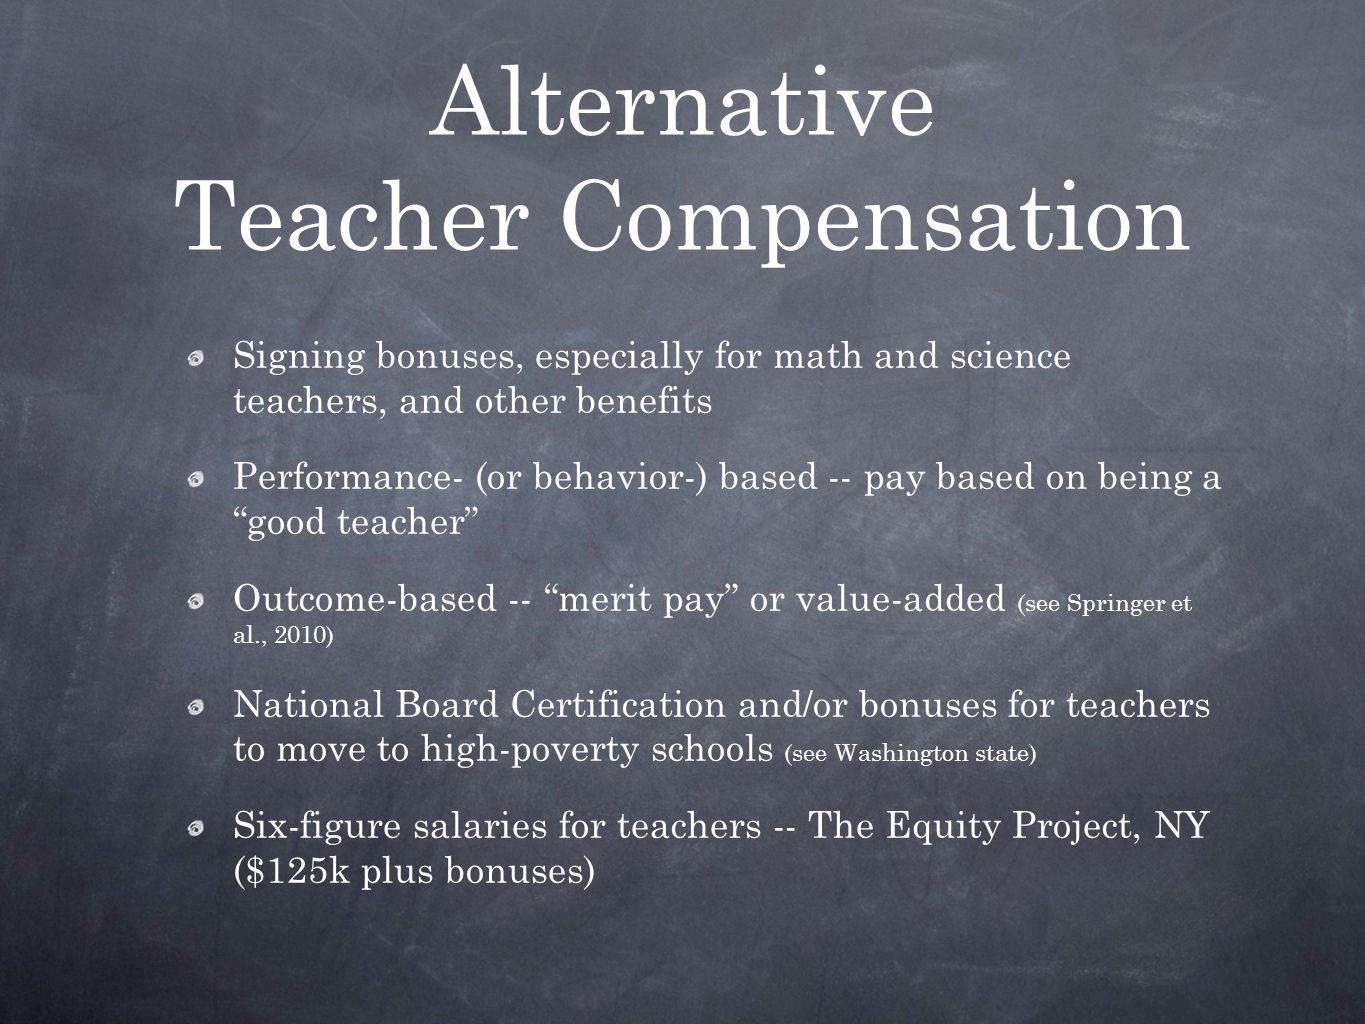 Alternative Teacher Compensation Signing bonuses, especially for math and science teachers, and other benefits Performance- (or behavior-) based -- pay based on being a good teacher Outcome-based -- merit pay or value-added (see Springer et al., 2010) National Board Certification and/or bonuses for teachers to move to high-poverty schools (see Washington state) Six-figure salaries for teachers -- The Equity Project, NY ($125k plus bonuses)